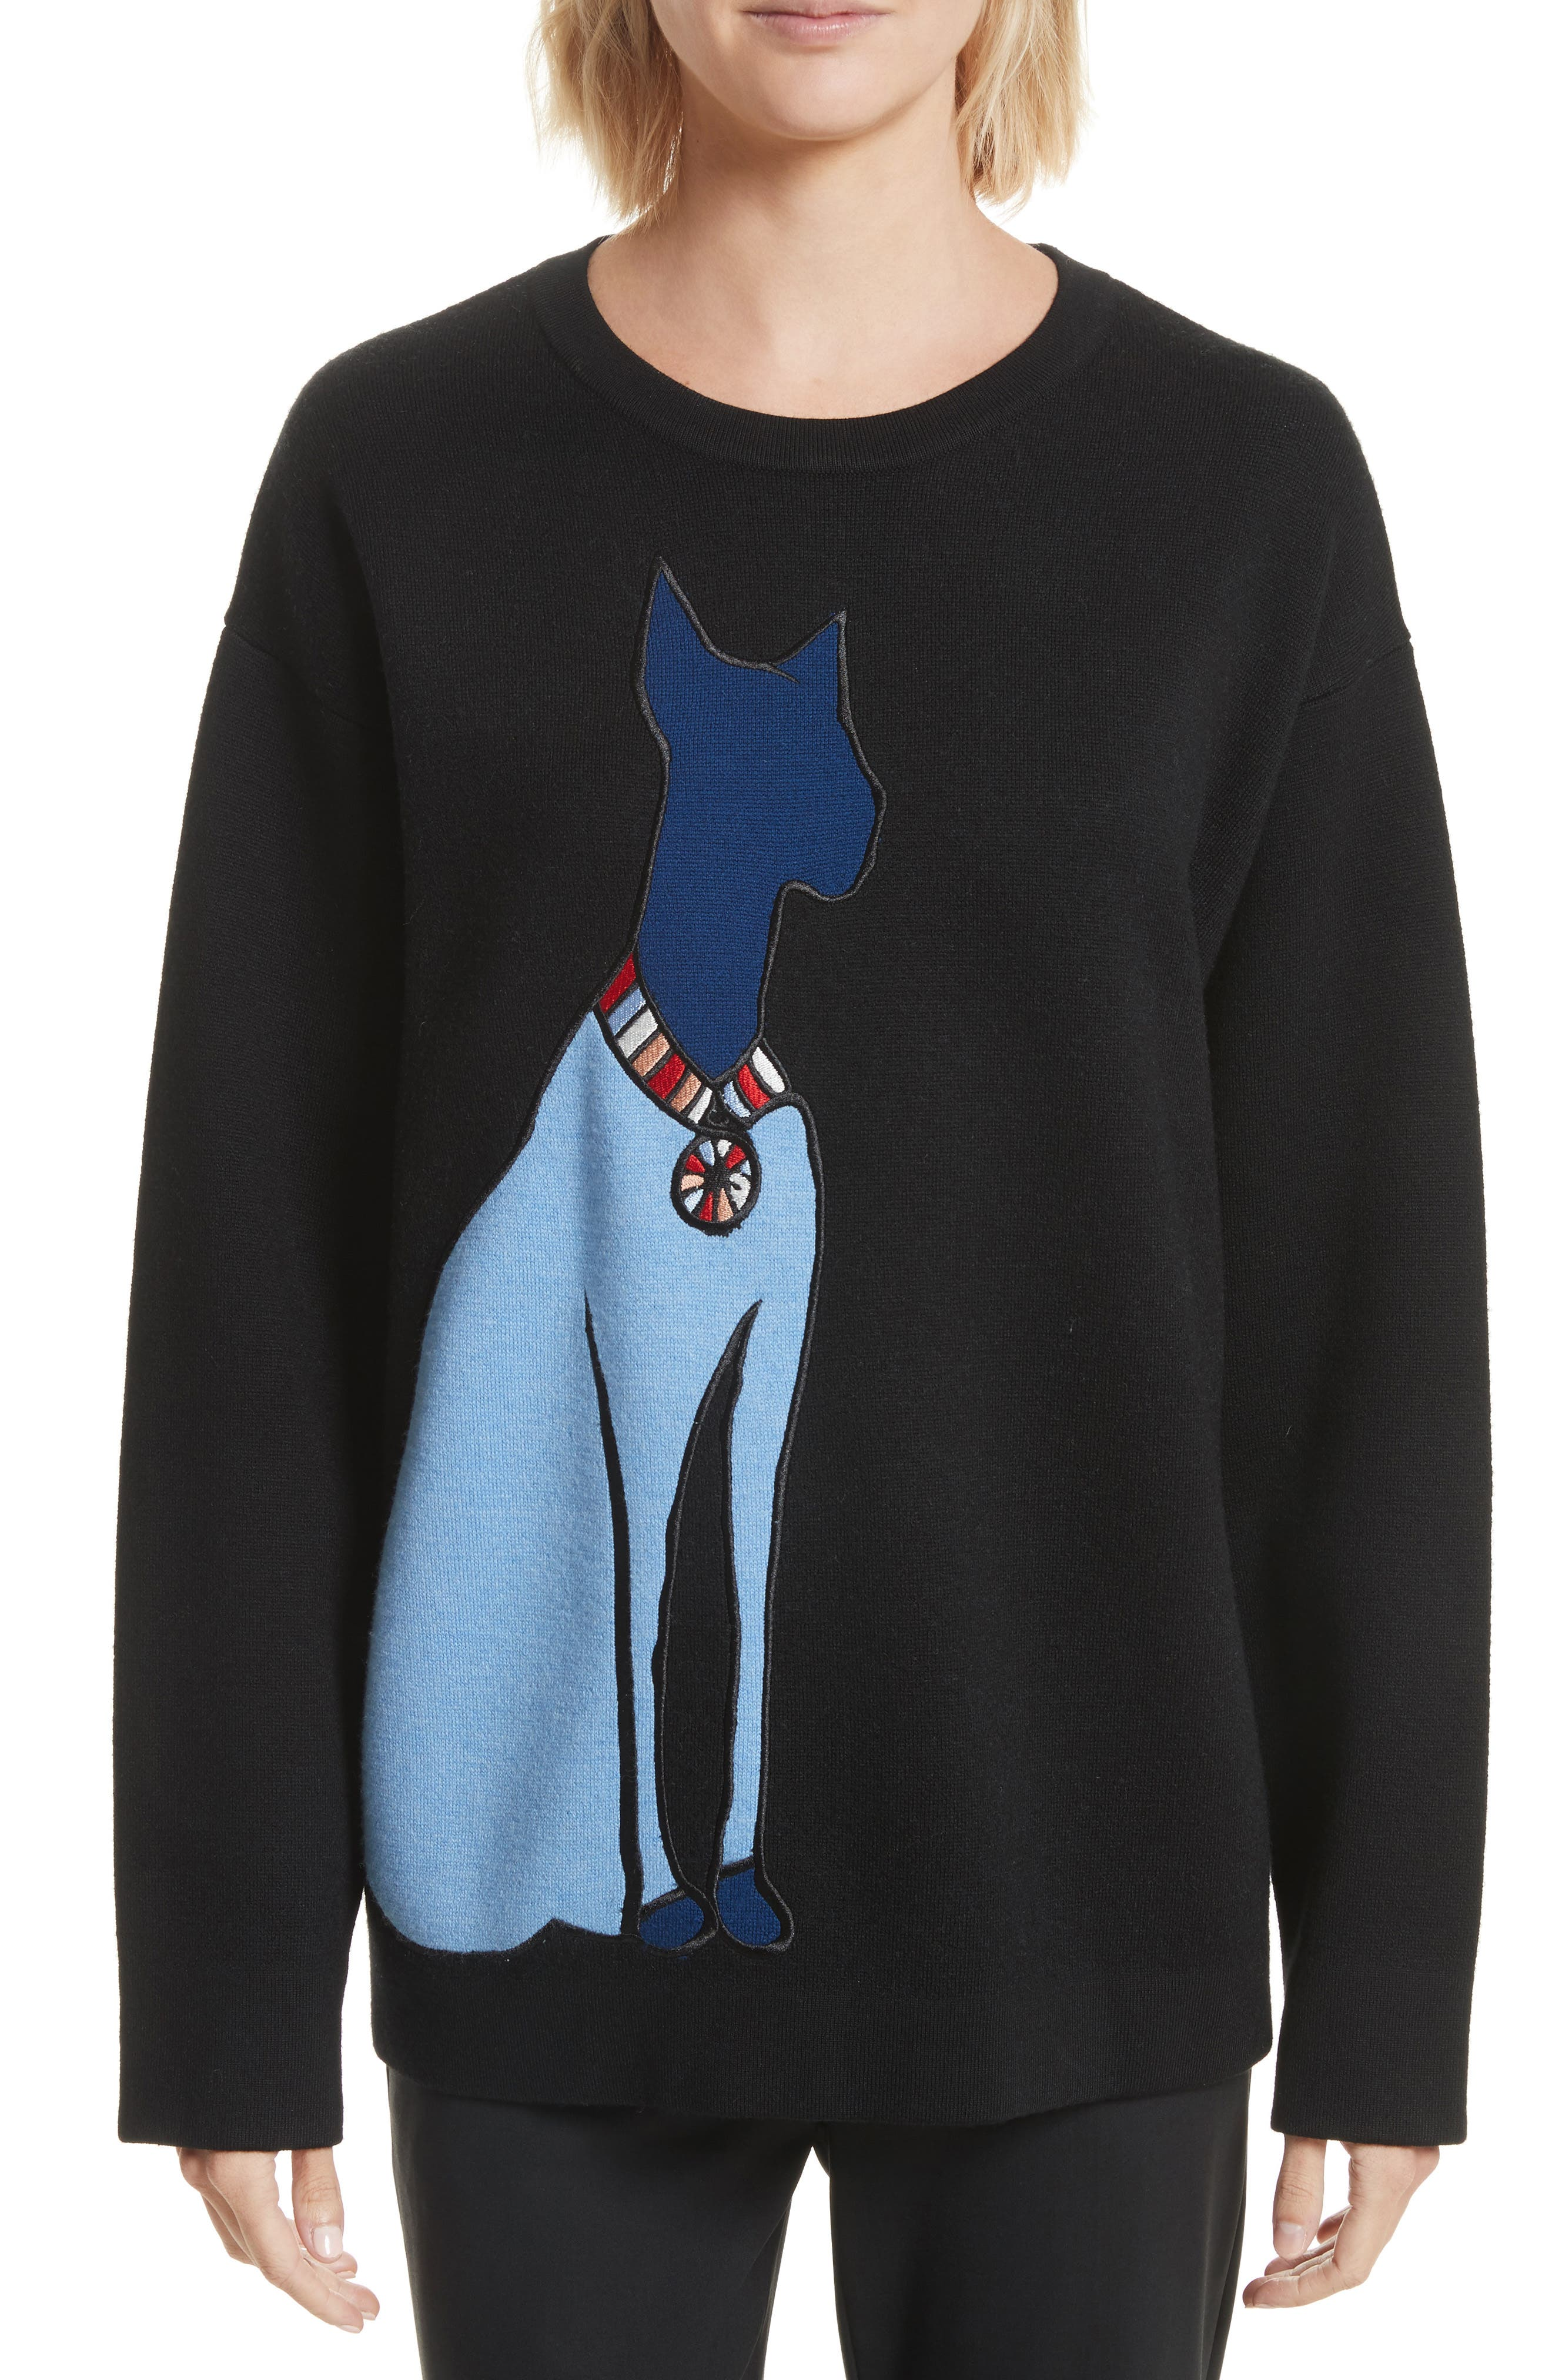 Alternate Image 1 Selected - GREY Jason Wu Embroidered Cat Pullover